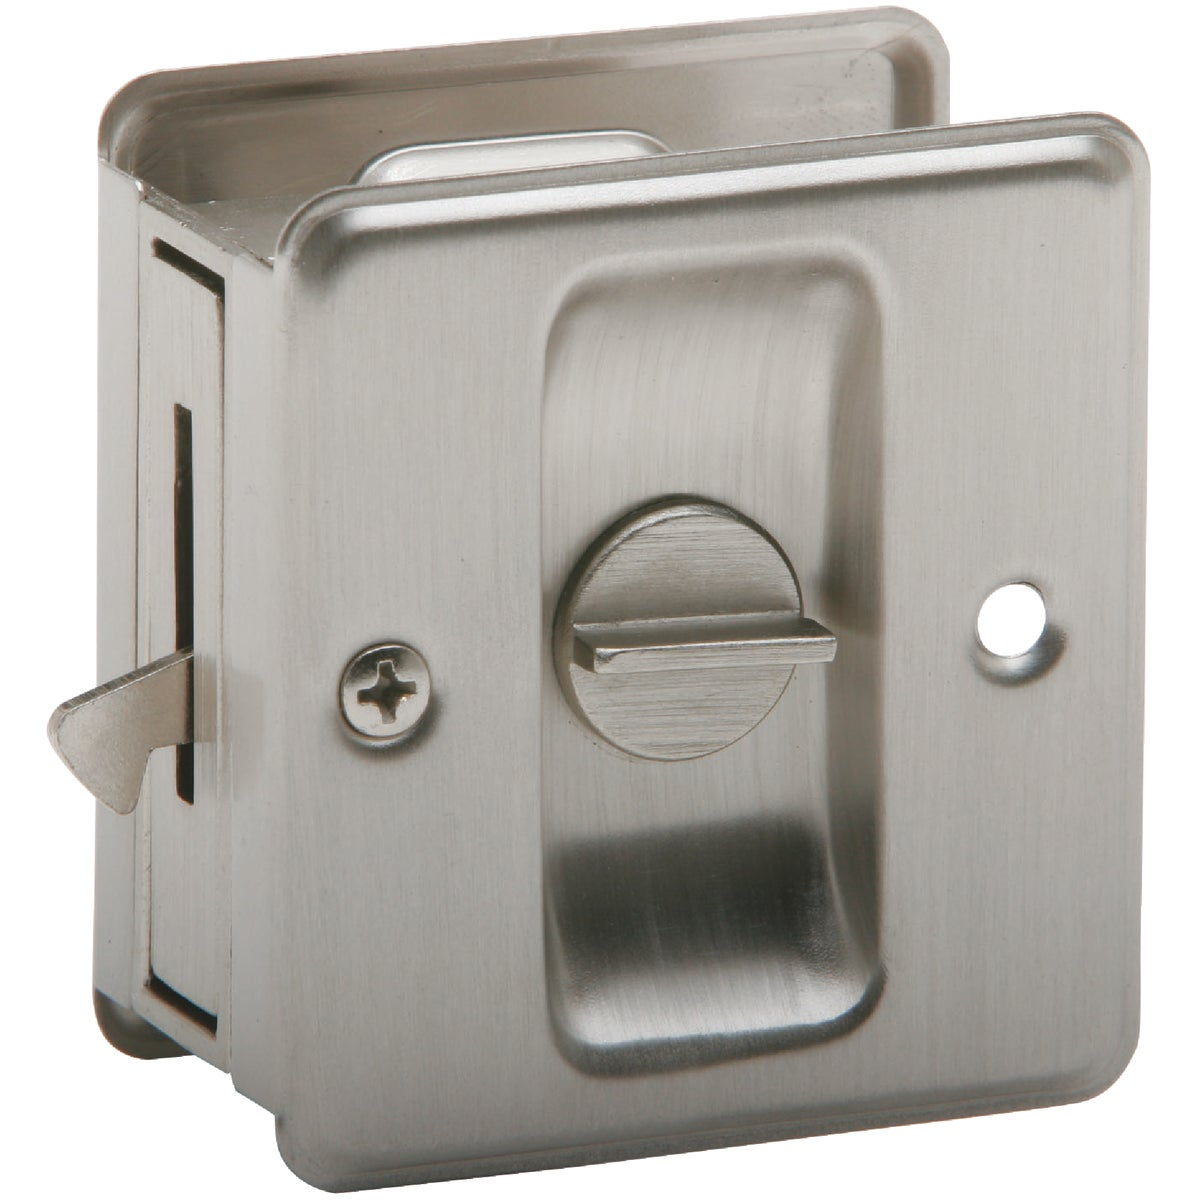 SN PRIV POCKET DOOR PULL - SC991B-619 by Schlage Lock Co